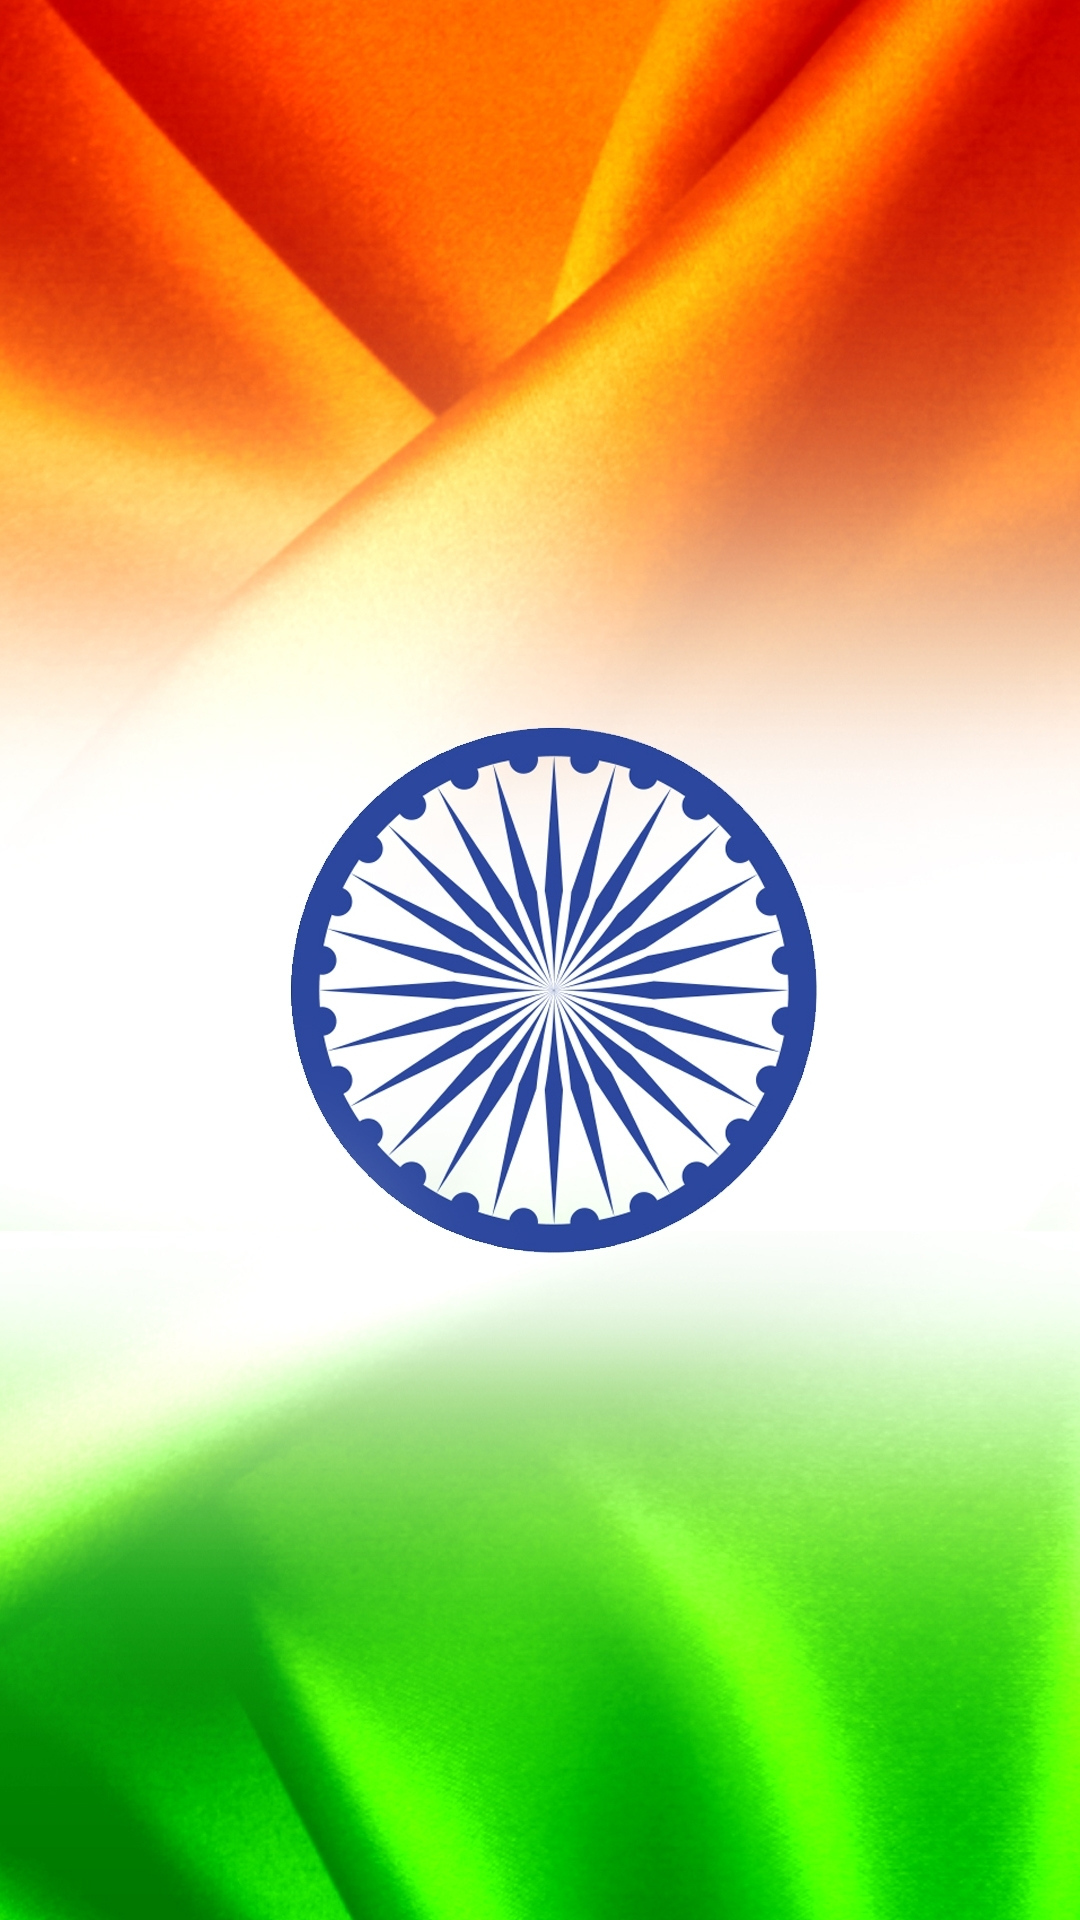 india flag for mobile phone wallpaper 11 of 17 – tricolour india